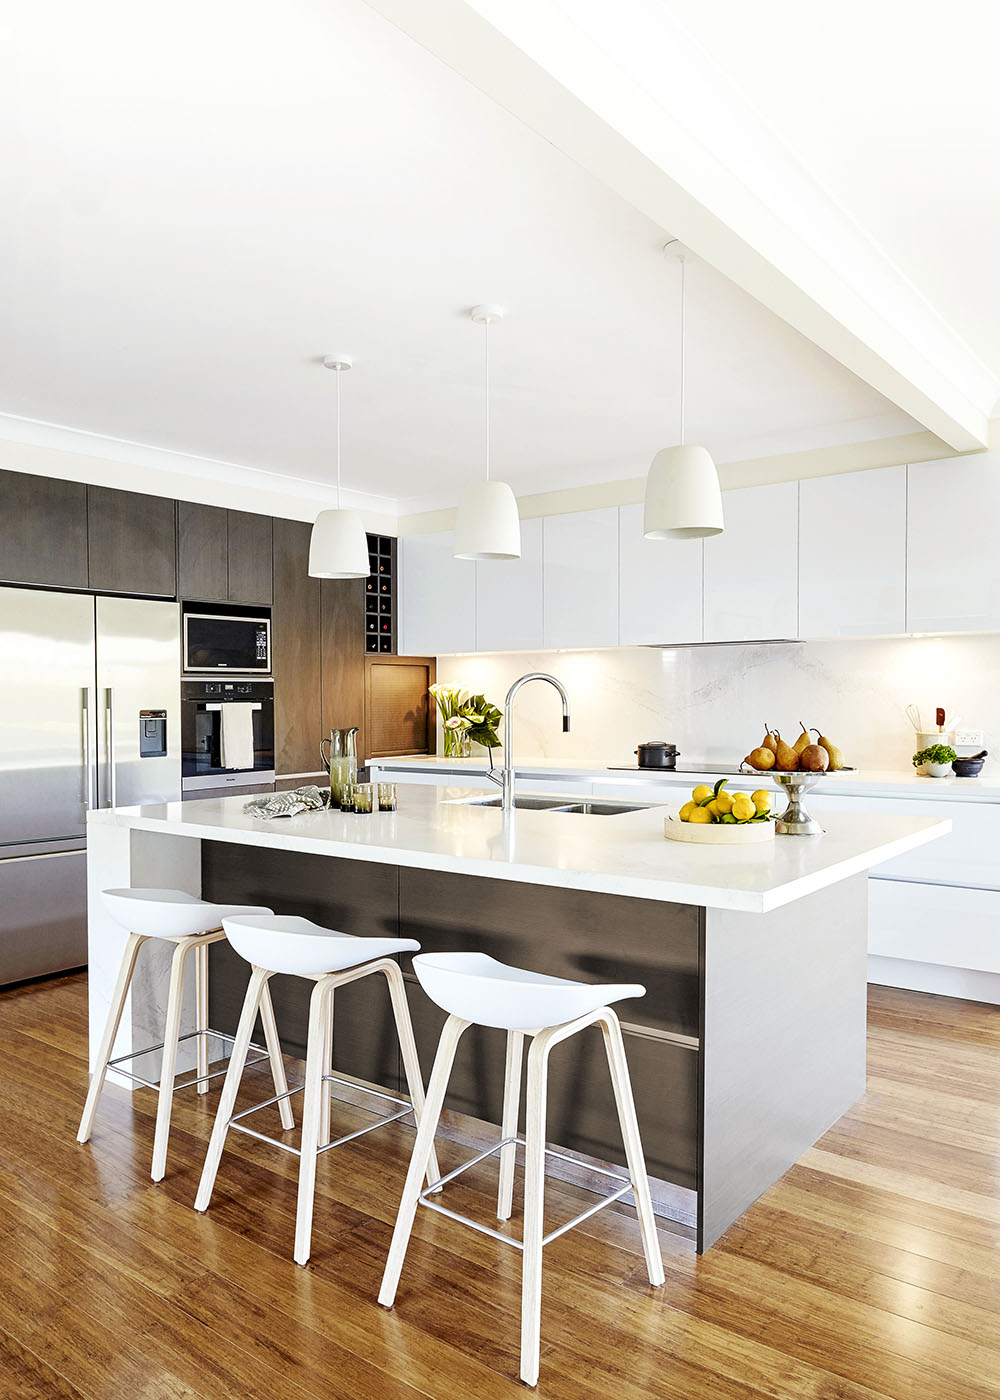 Let this timeless modern kitchen inspire you | Home Beautiful ...